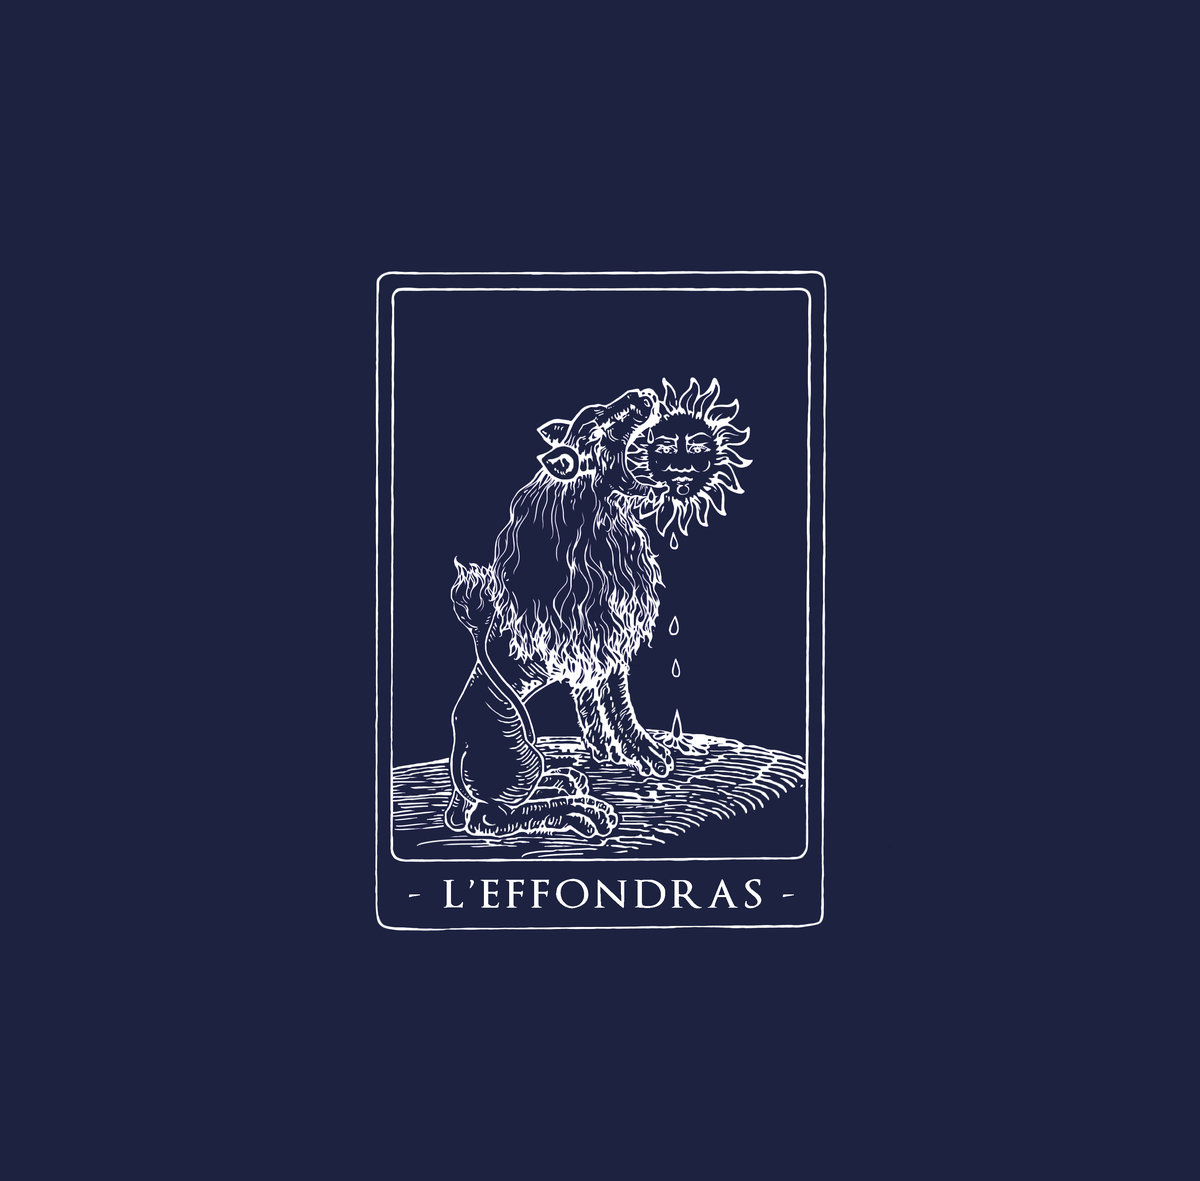 L'EFFONDRAS s/t - Vinyl LP (black)